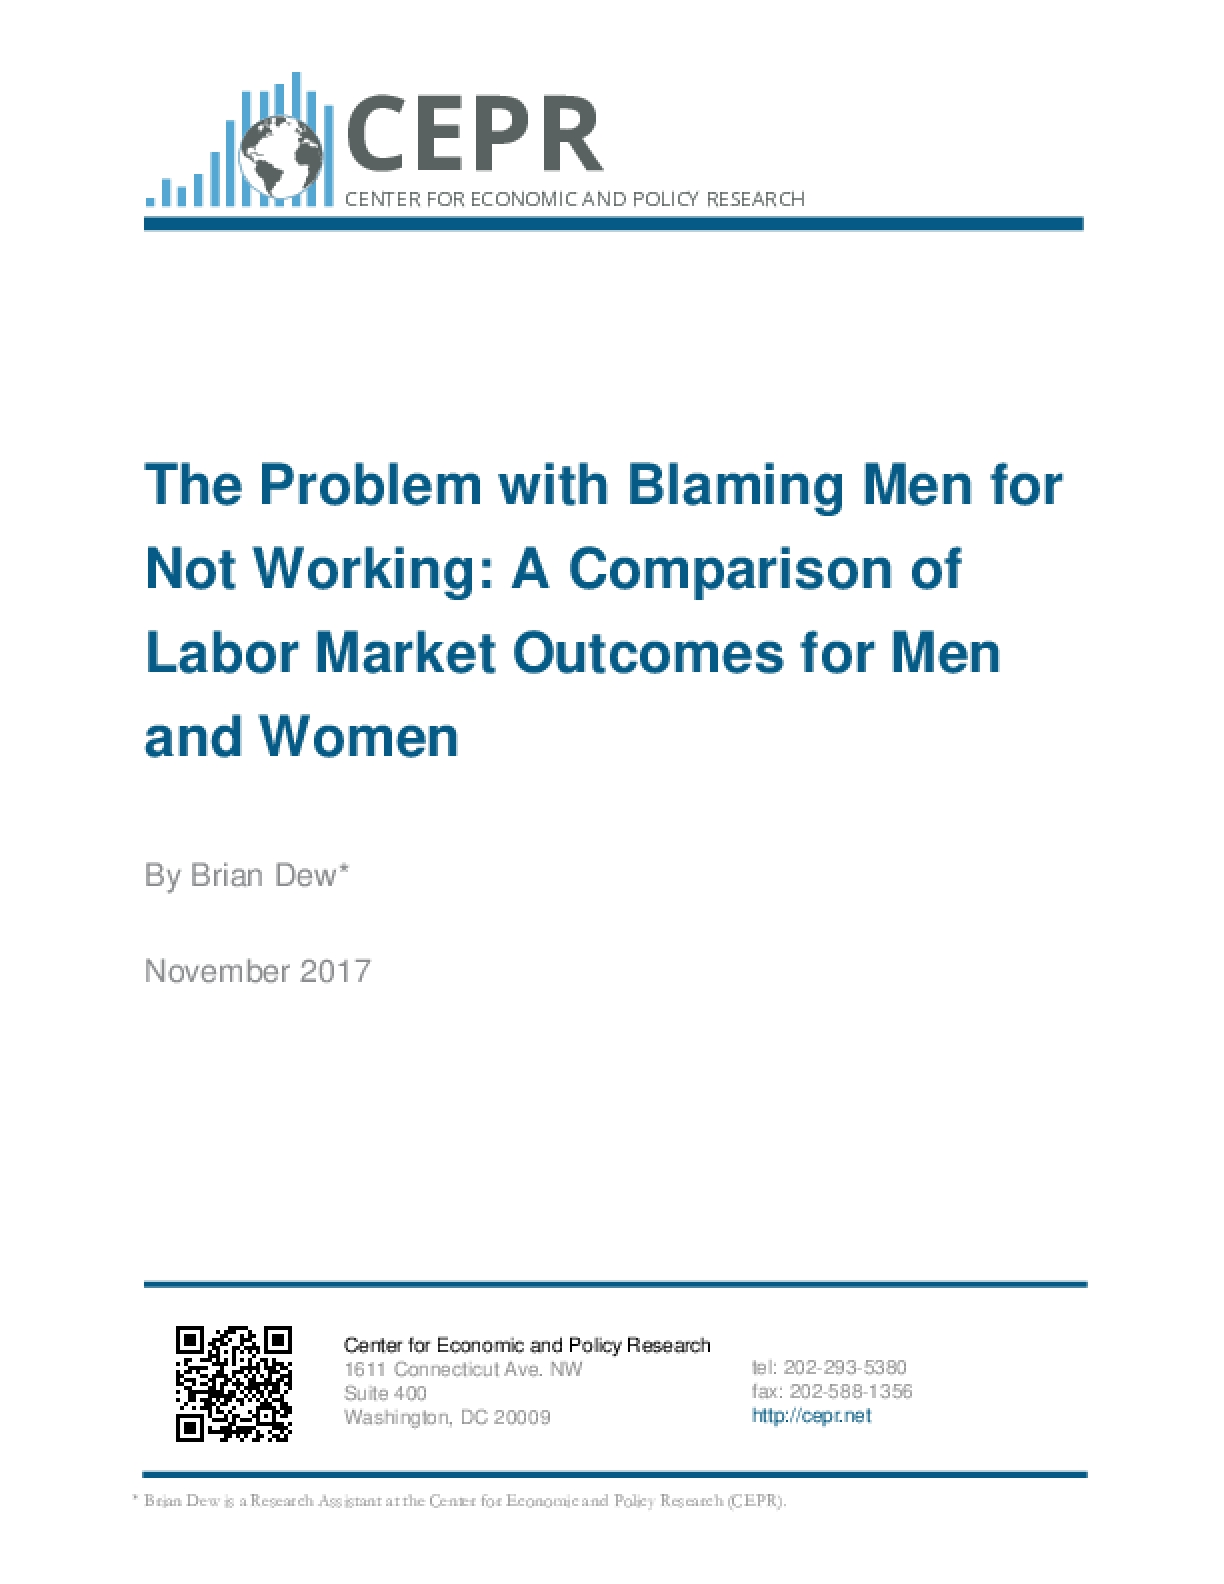 The Problem with Blaming Men for Not Working: A Comparison of Labor Market Outcomes for Men and Women